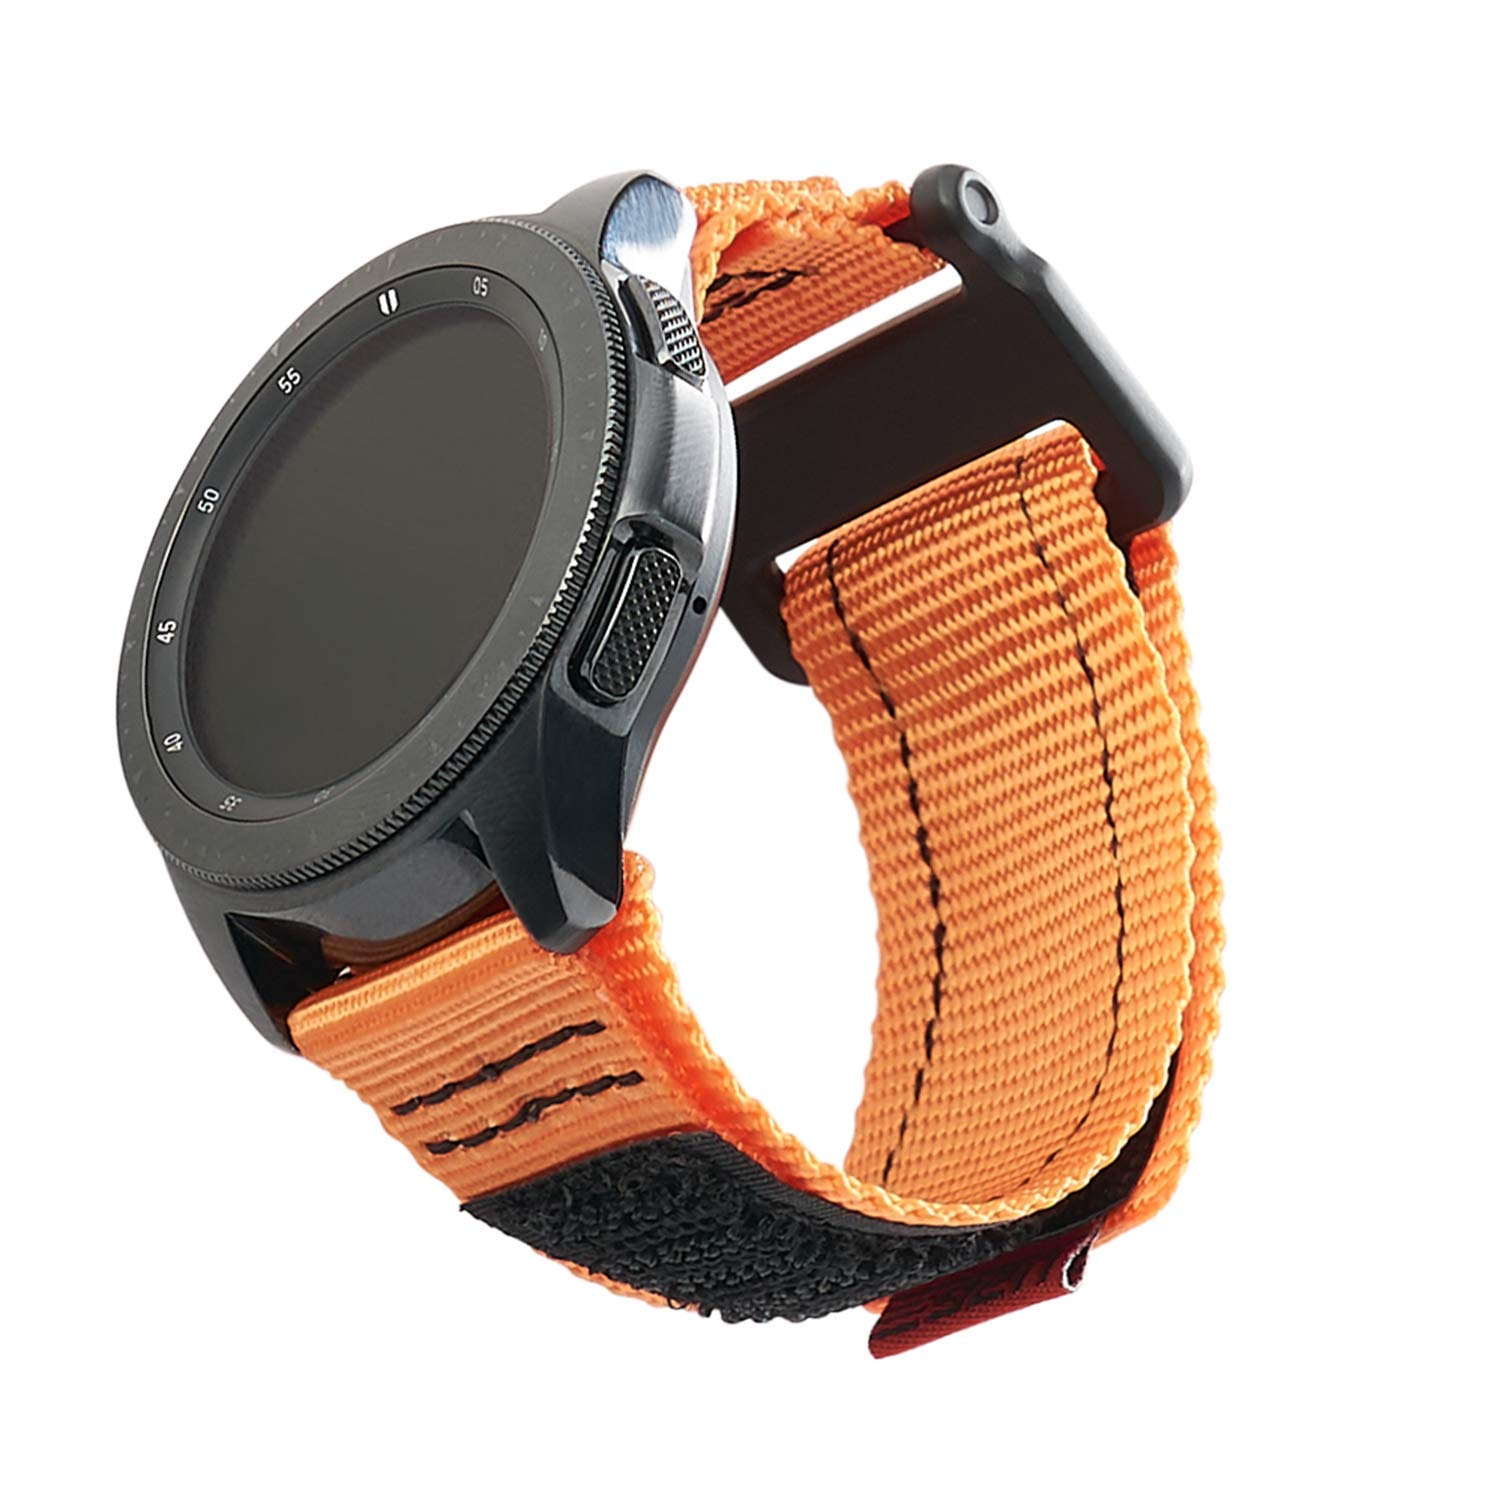 URBAN ARMOR GEAR UAG Compatible with Samsung Galaxy Watch Band 46mm/Galaxy Watch Active 2/Gear S3, fits Most 22mm Watch Lugs, Active Orange